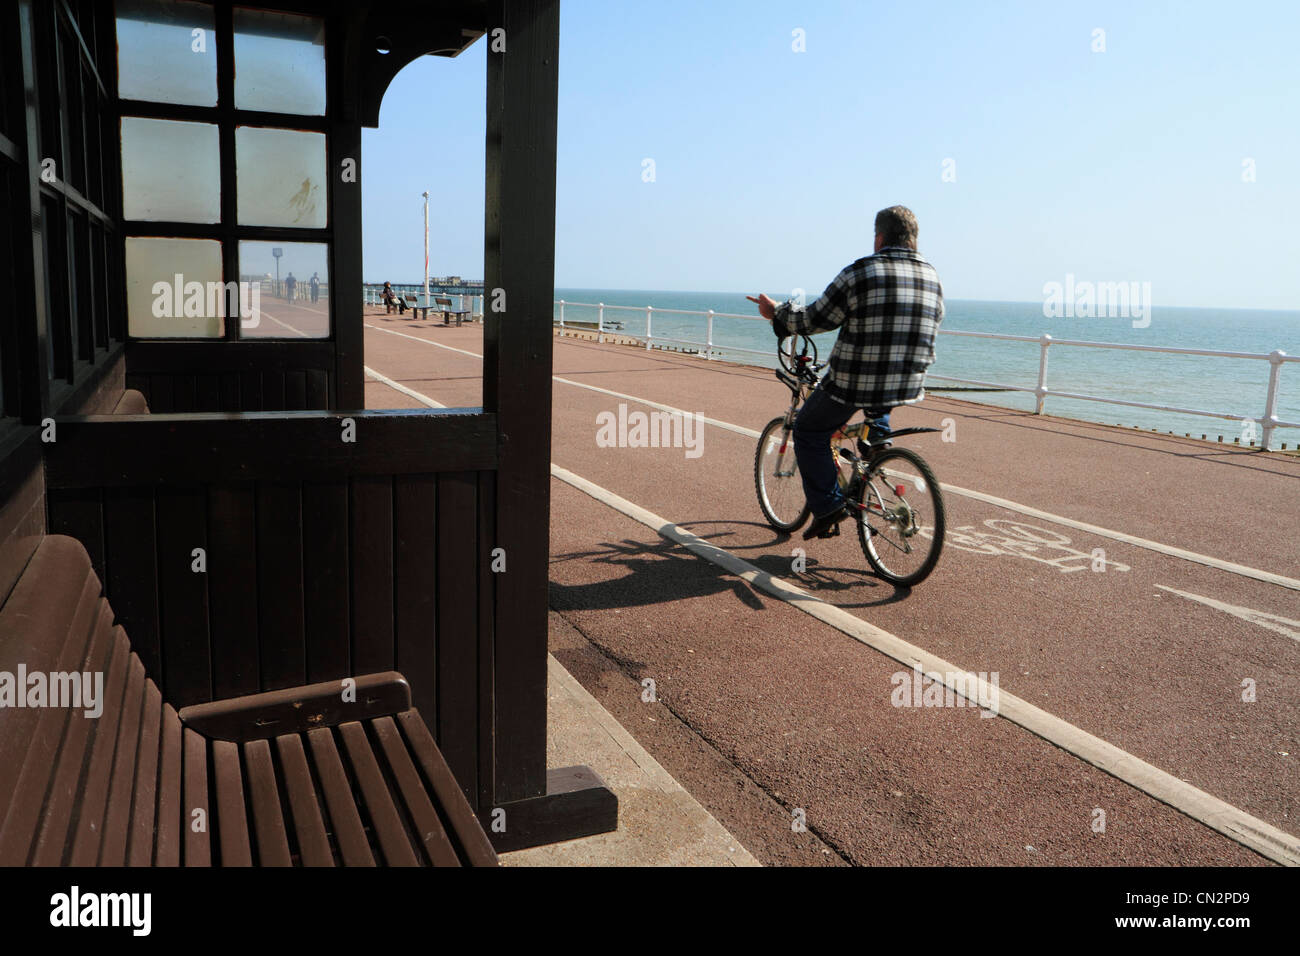 Seafront cycle lane, St Leonard's-on; sea, Hastings, East Sussex, UK - Stock Image